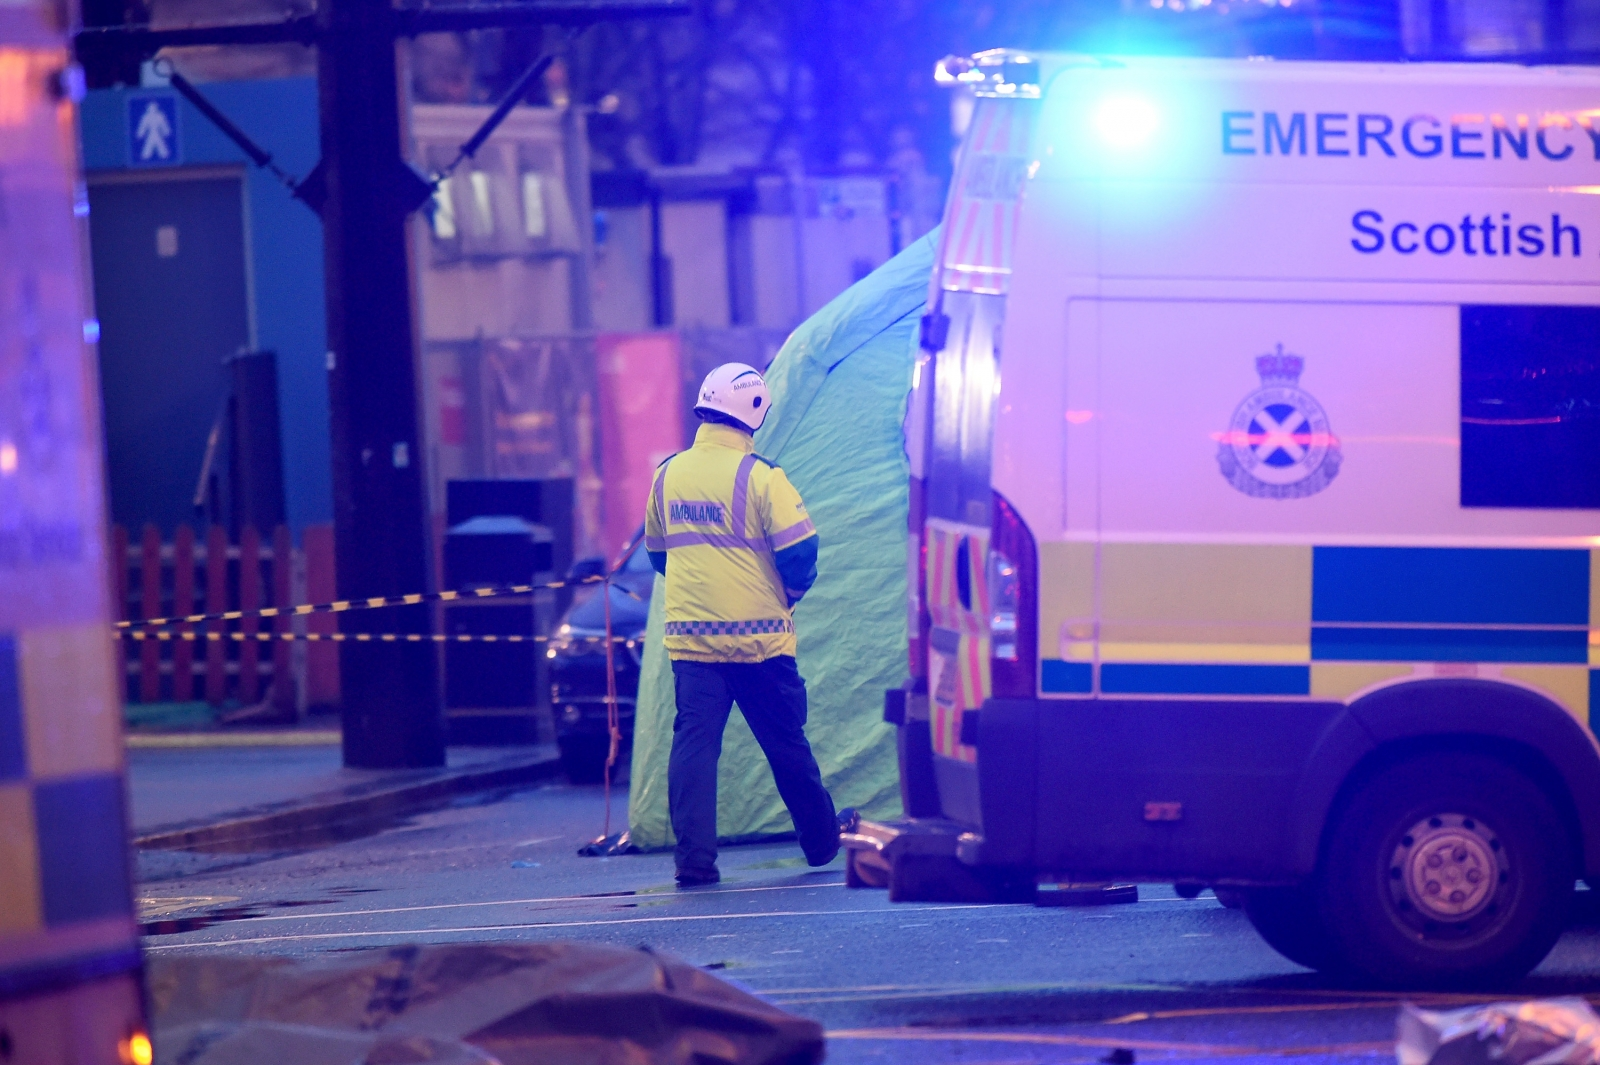 Driver behind wheel of bin lorry in Glasgow crash was taken to hospital